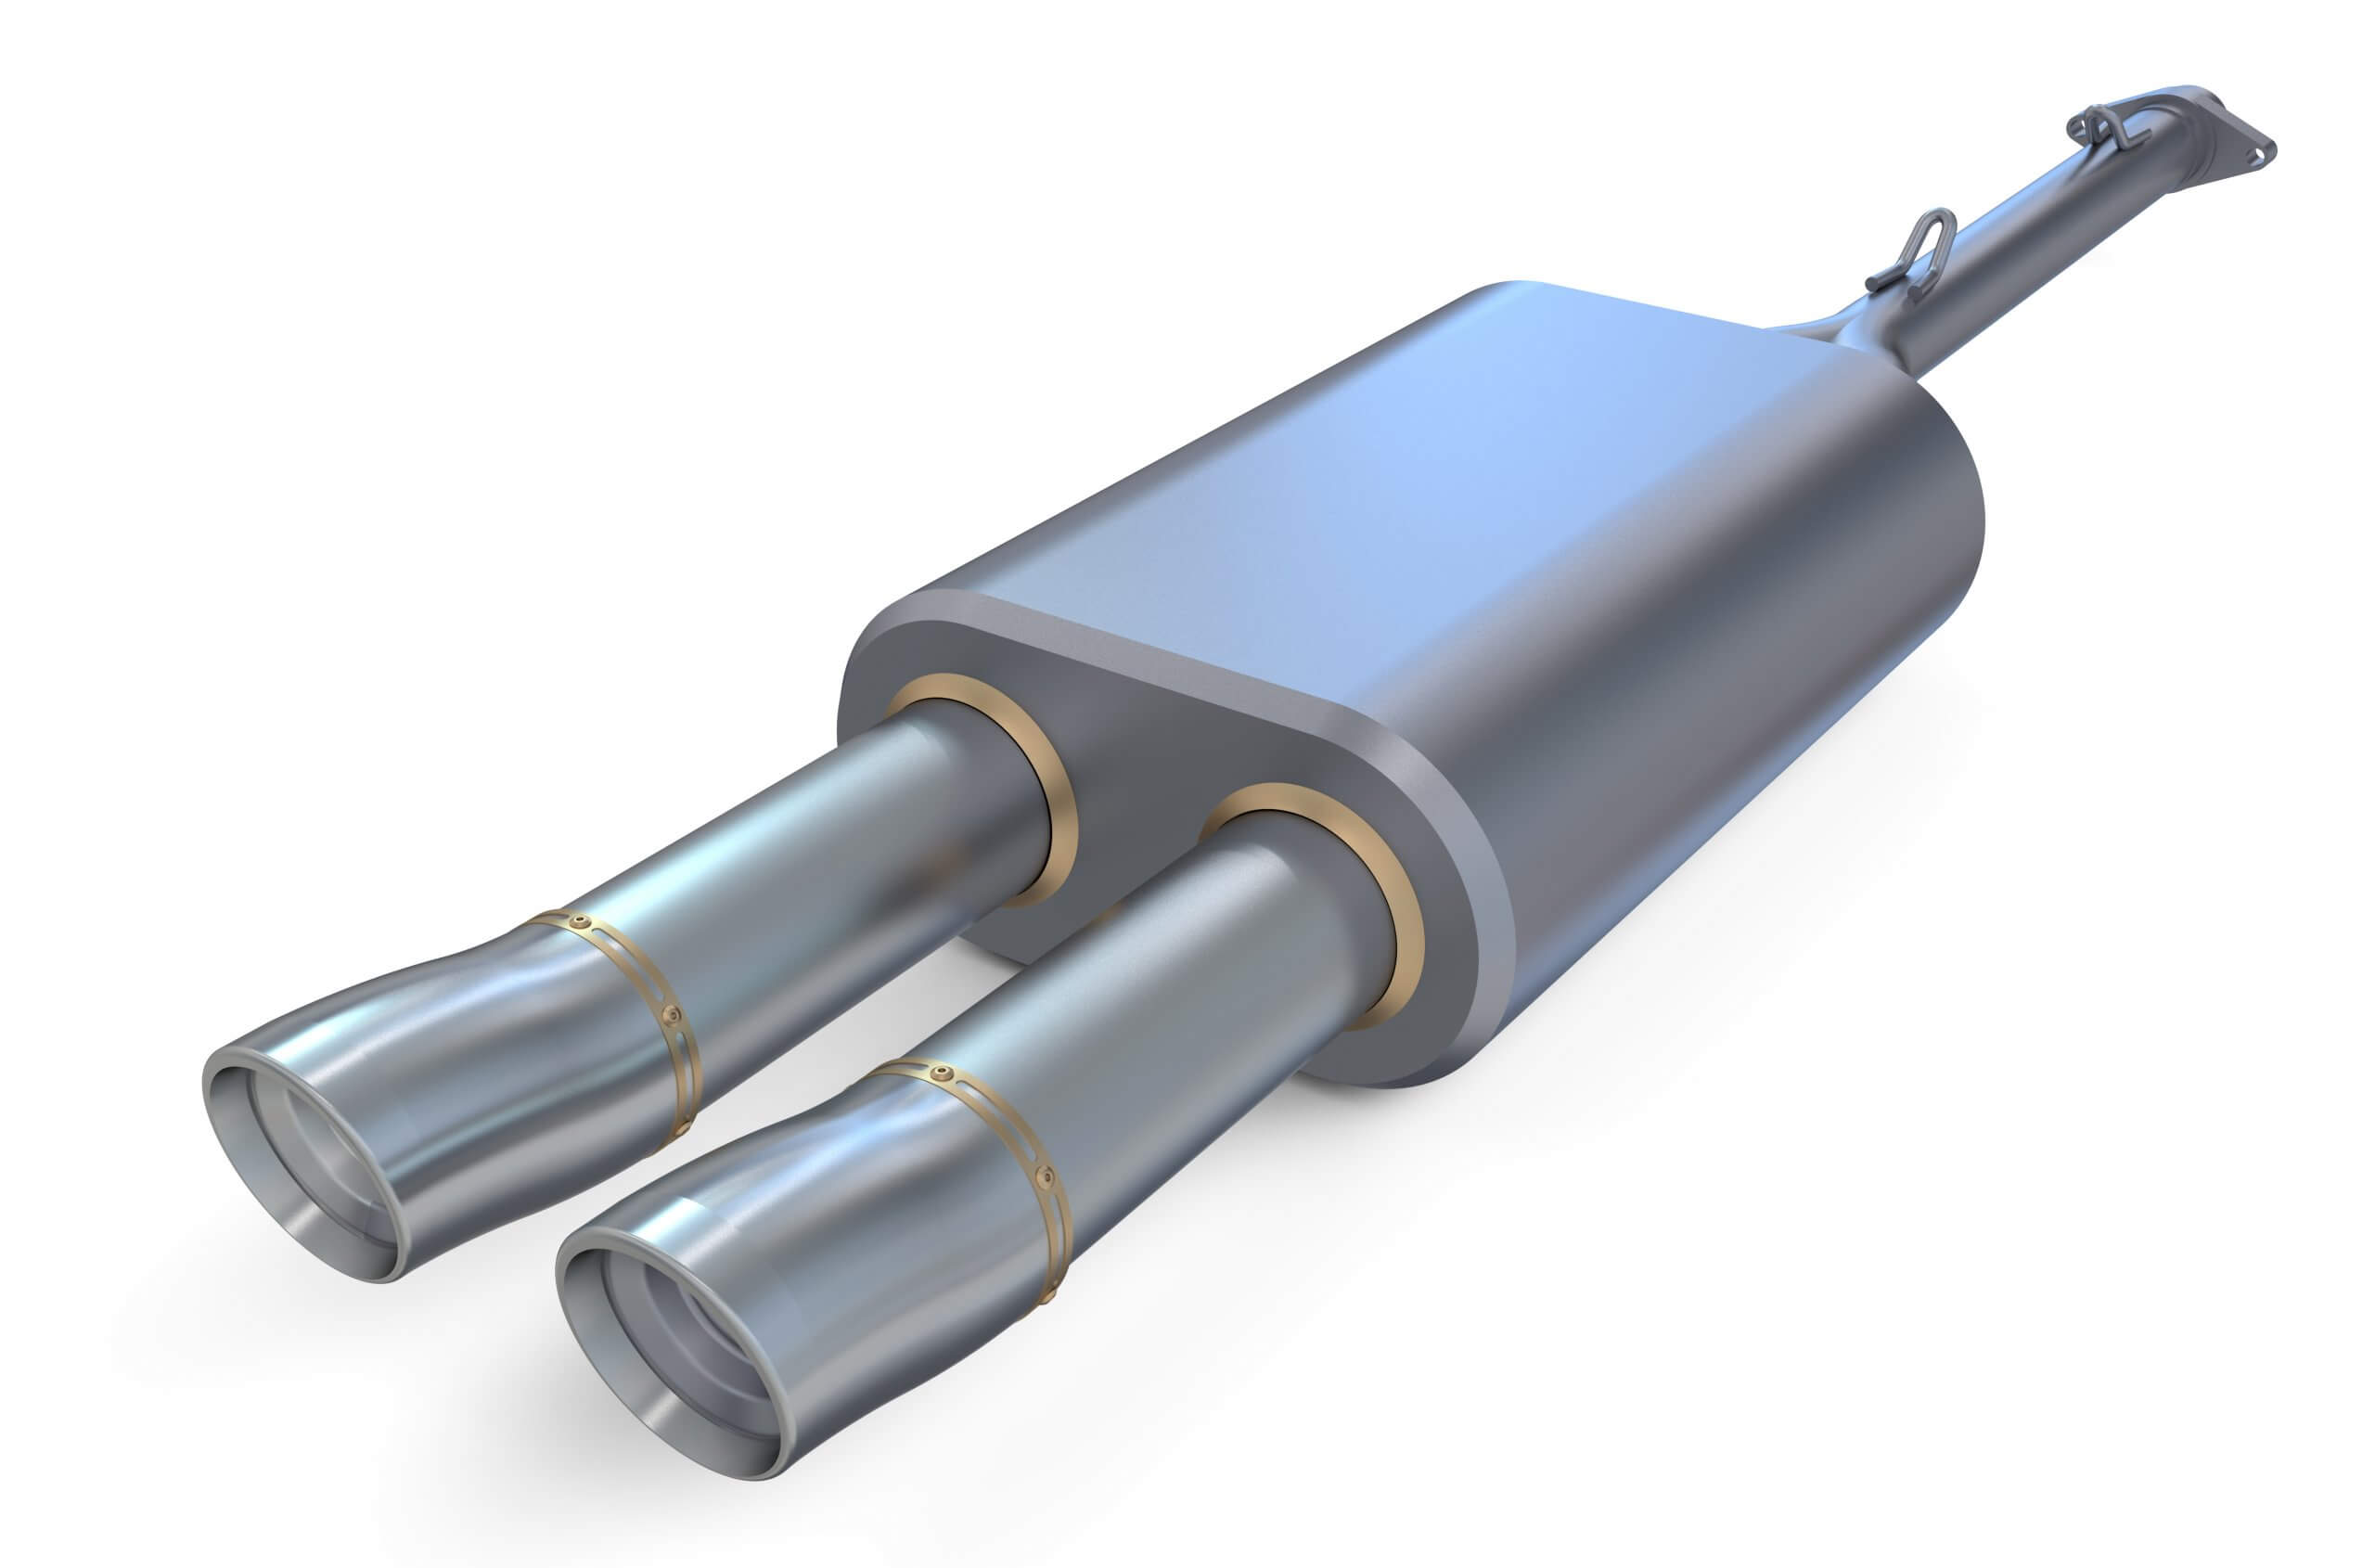 car exhaust pipe housing catalytic converter on white background